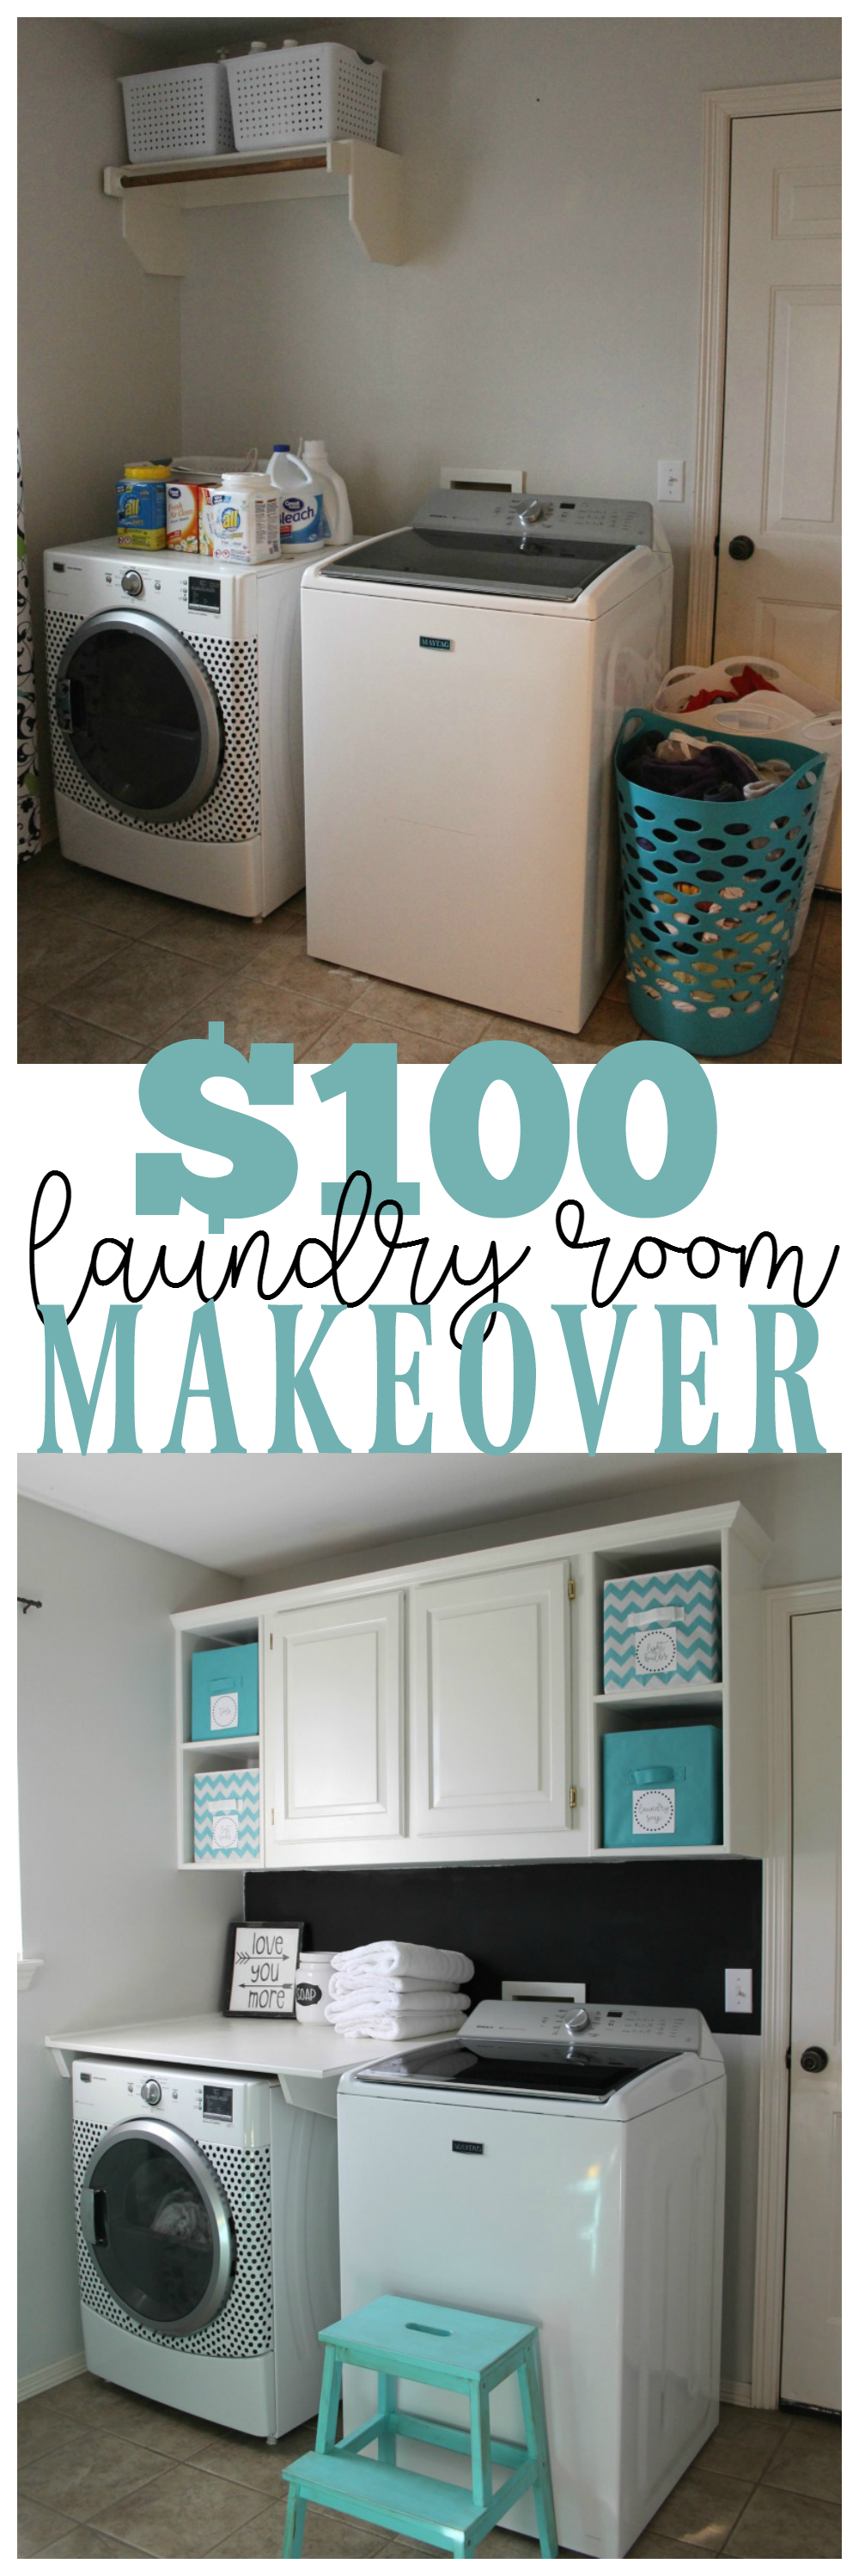 Laundry Room Makeover For Under 100 Laundry Room Remodel Laundry Room Makeover Laundry Room